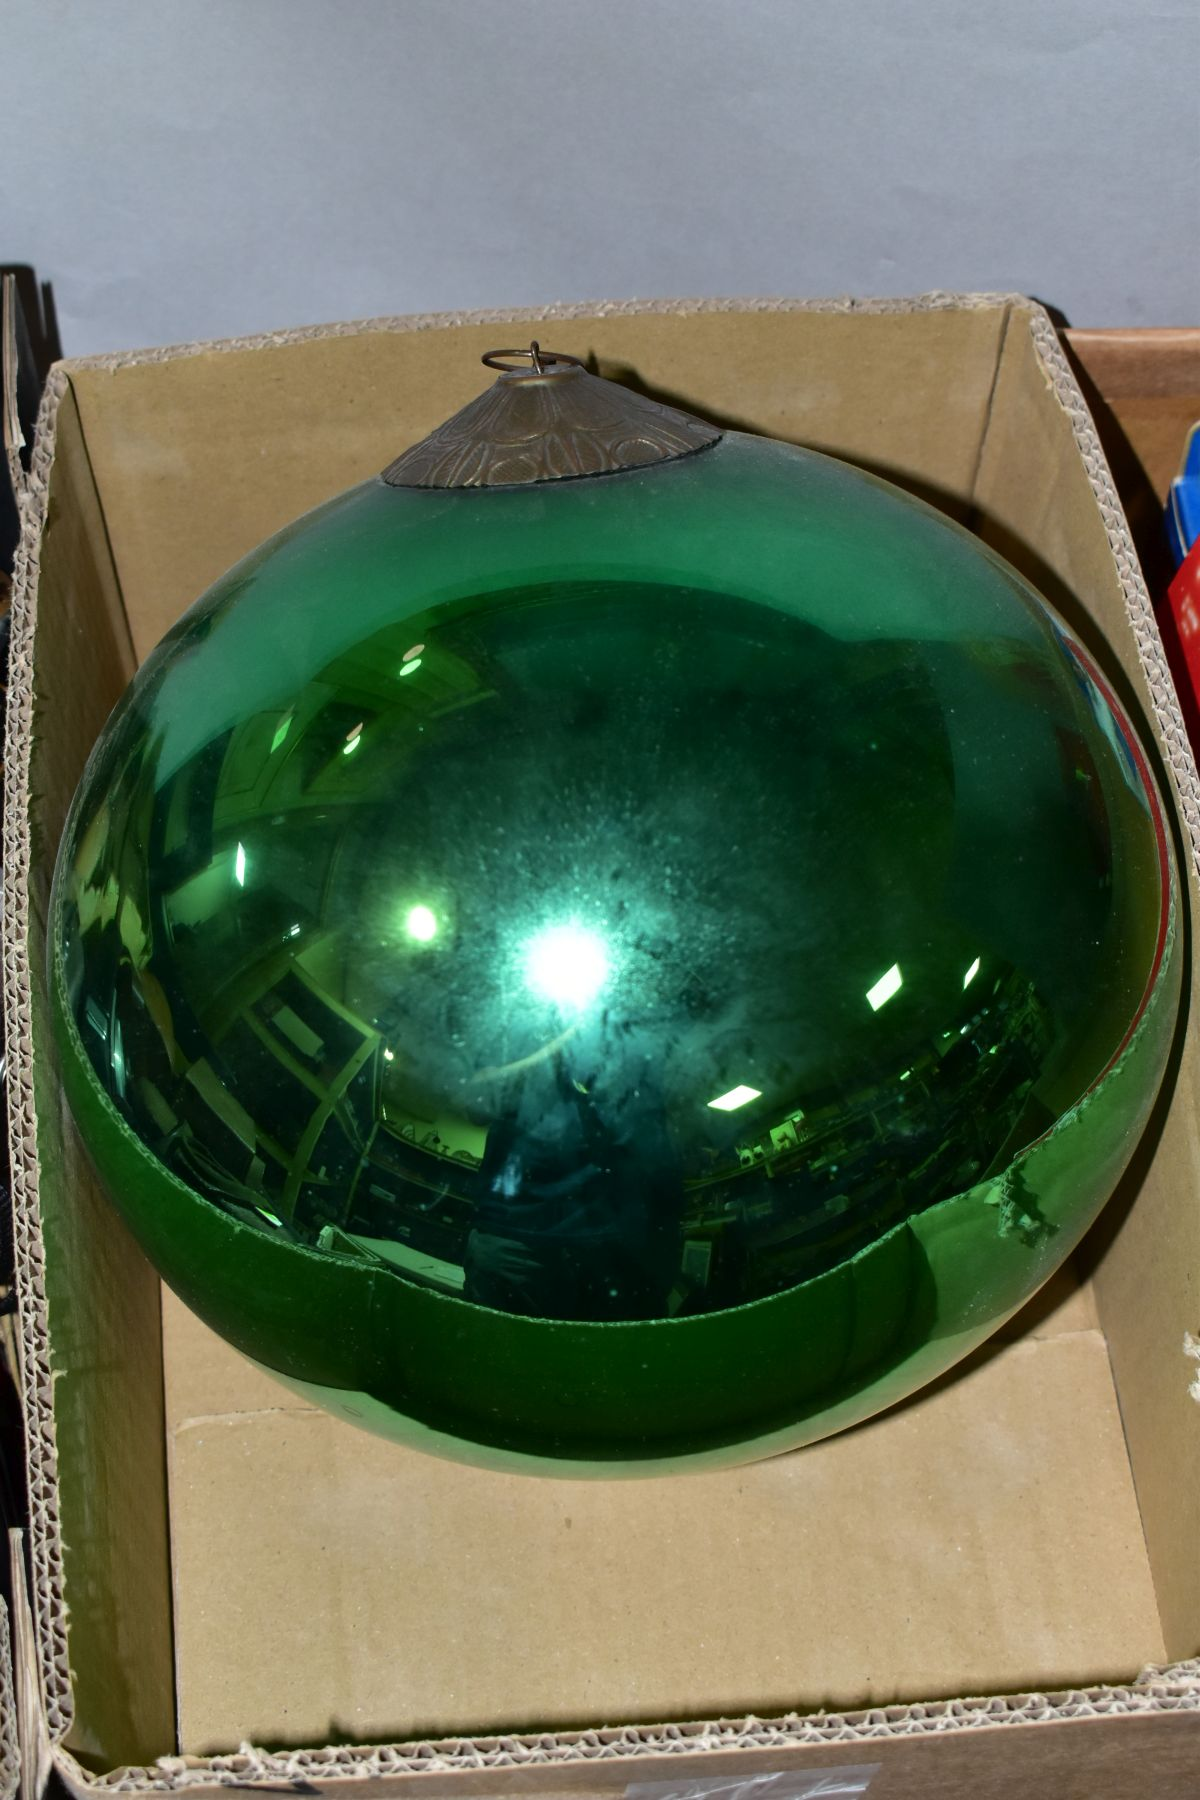 A LATE 19TH/EARLY 20TH CENTURY METALLIC GREEN GLASS WITCH'S BALL with metal mount and short length